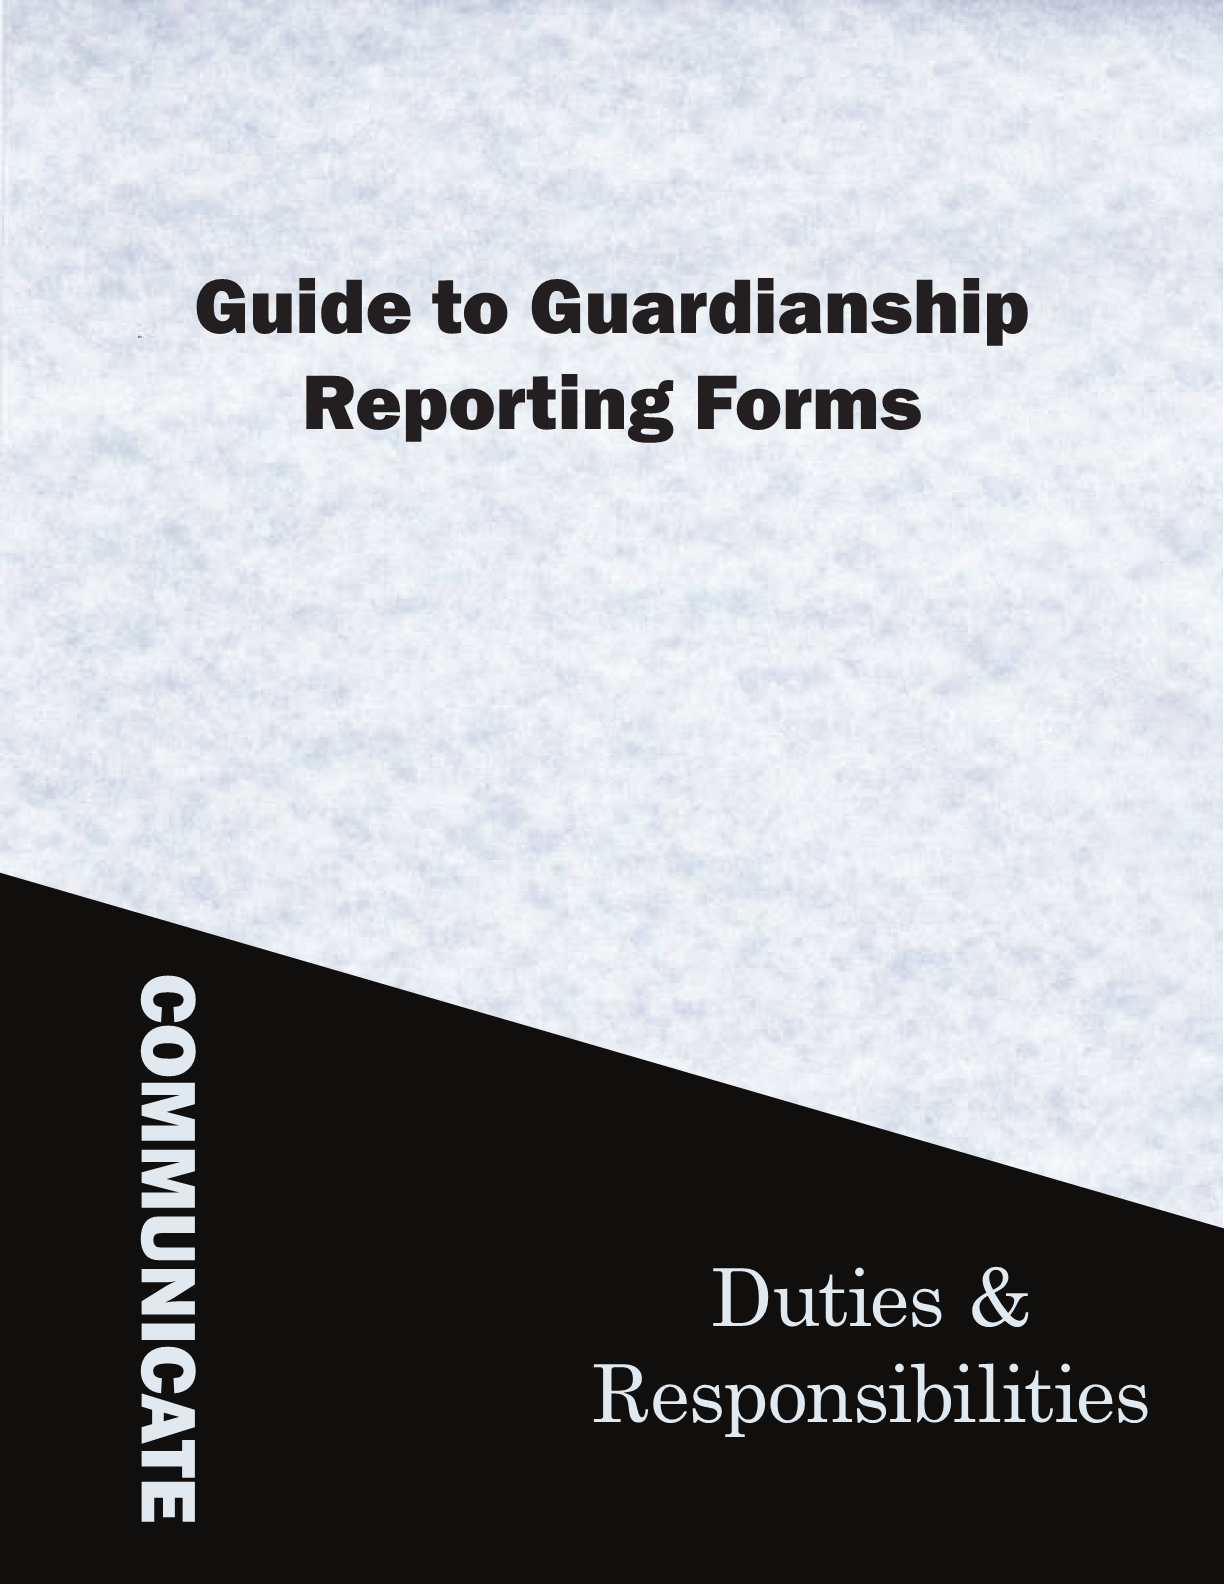 Guide to Guardianship Reporting Forms